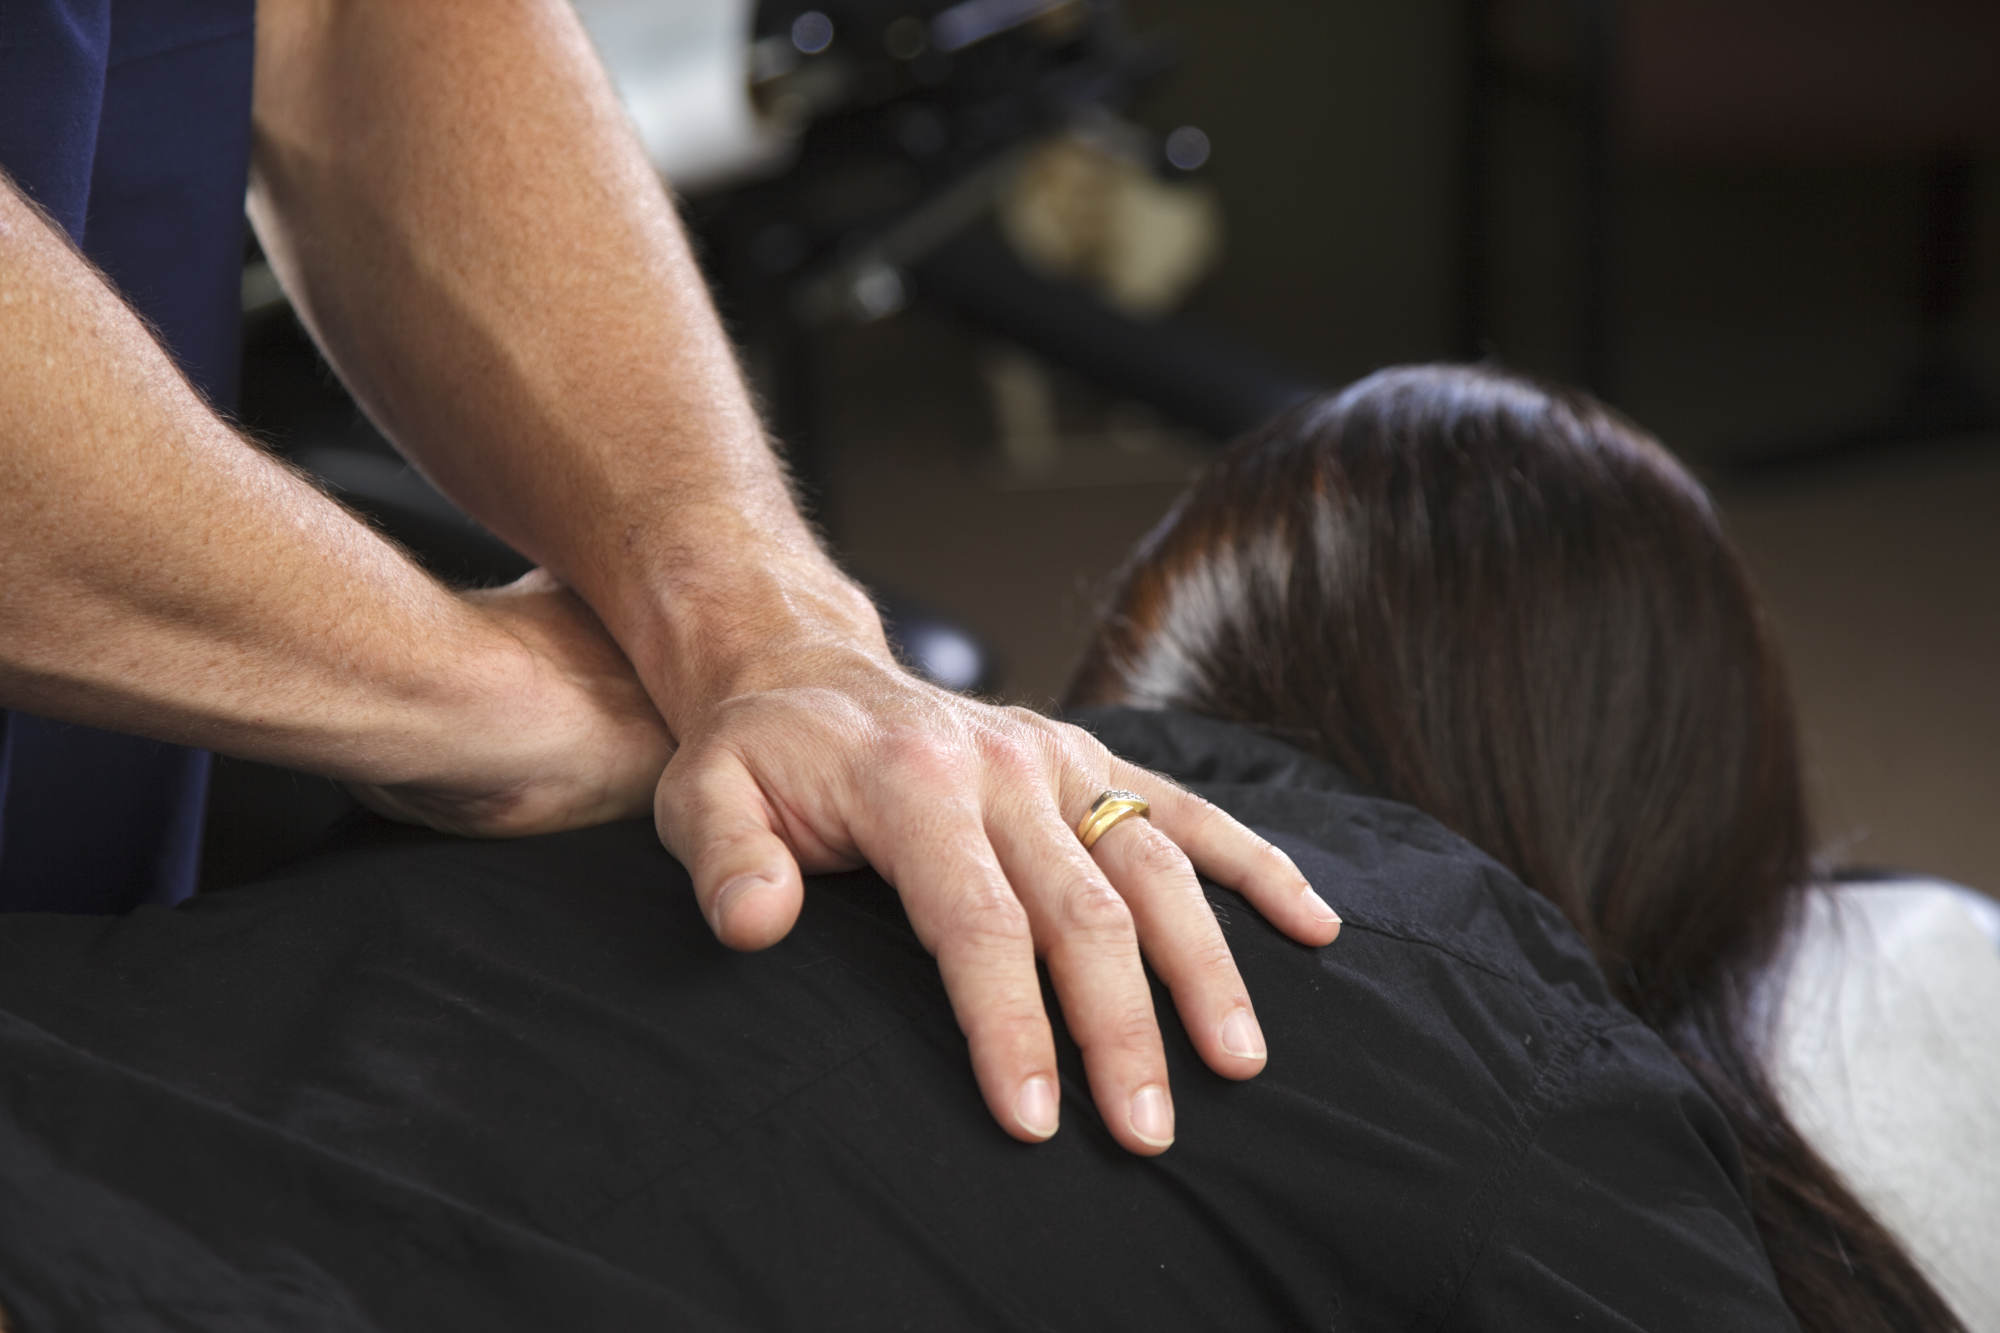 A patient receiving a treatment in a chiropractor office.